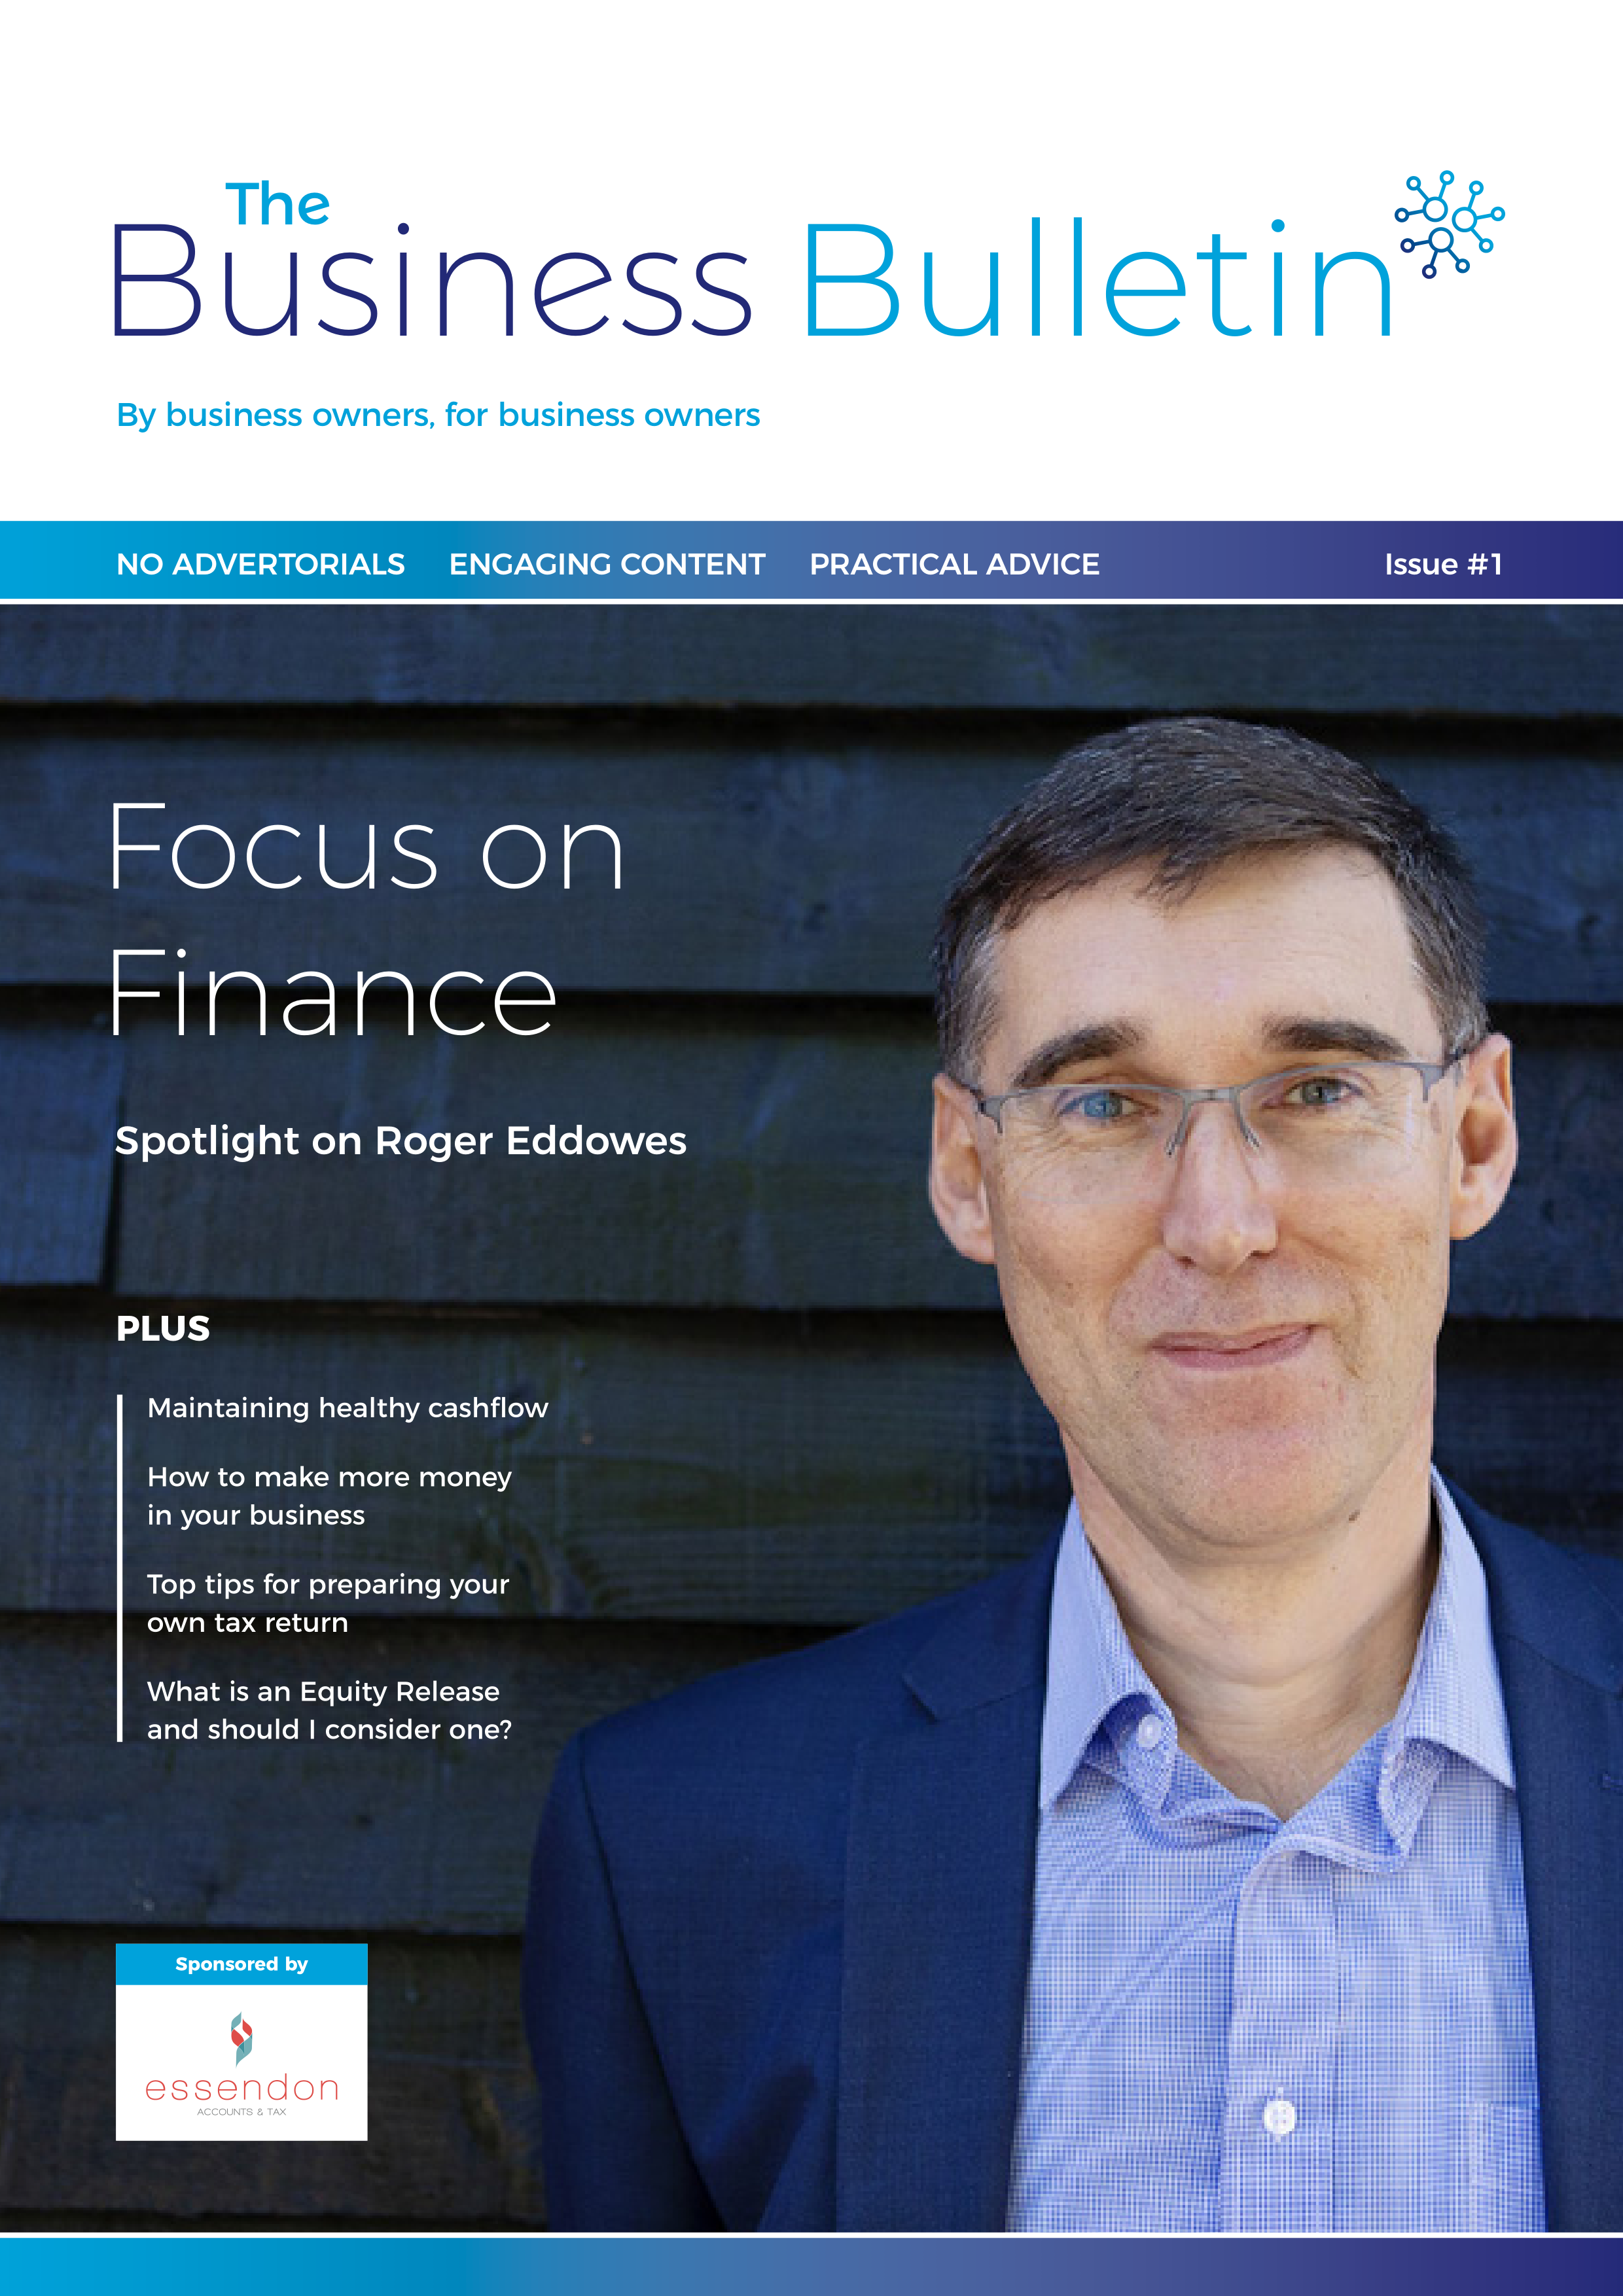 The Business Bulletin Issue 1 - Focus On Finance